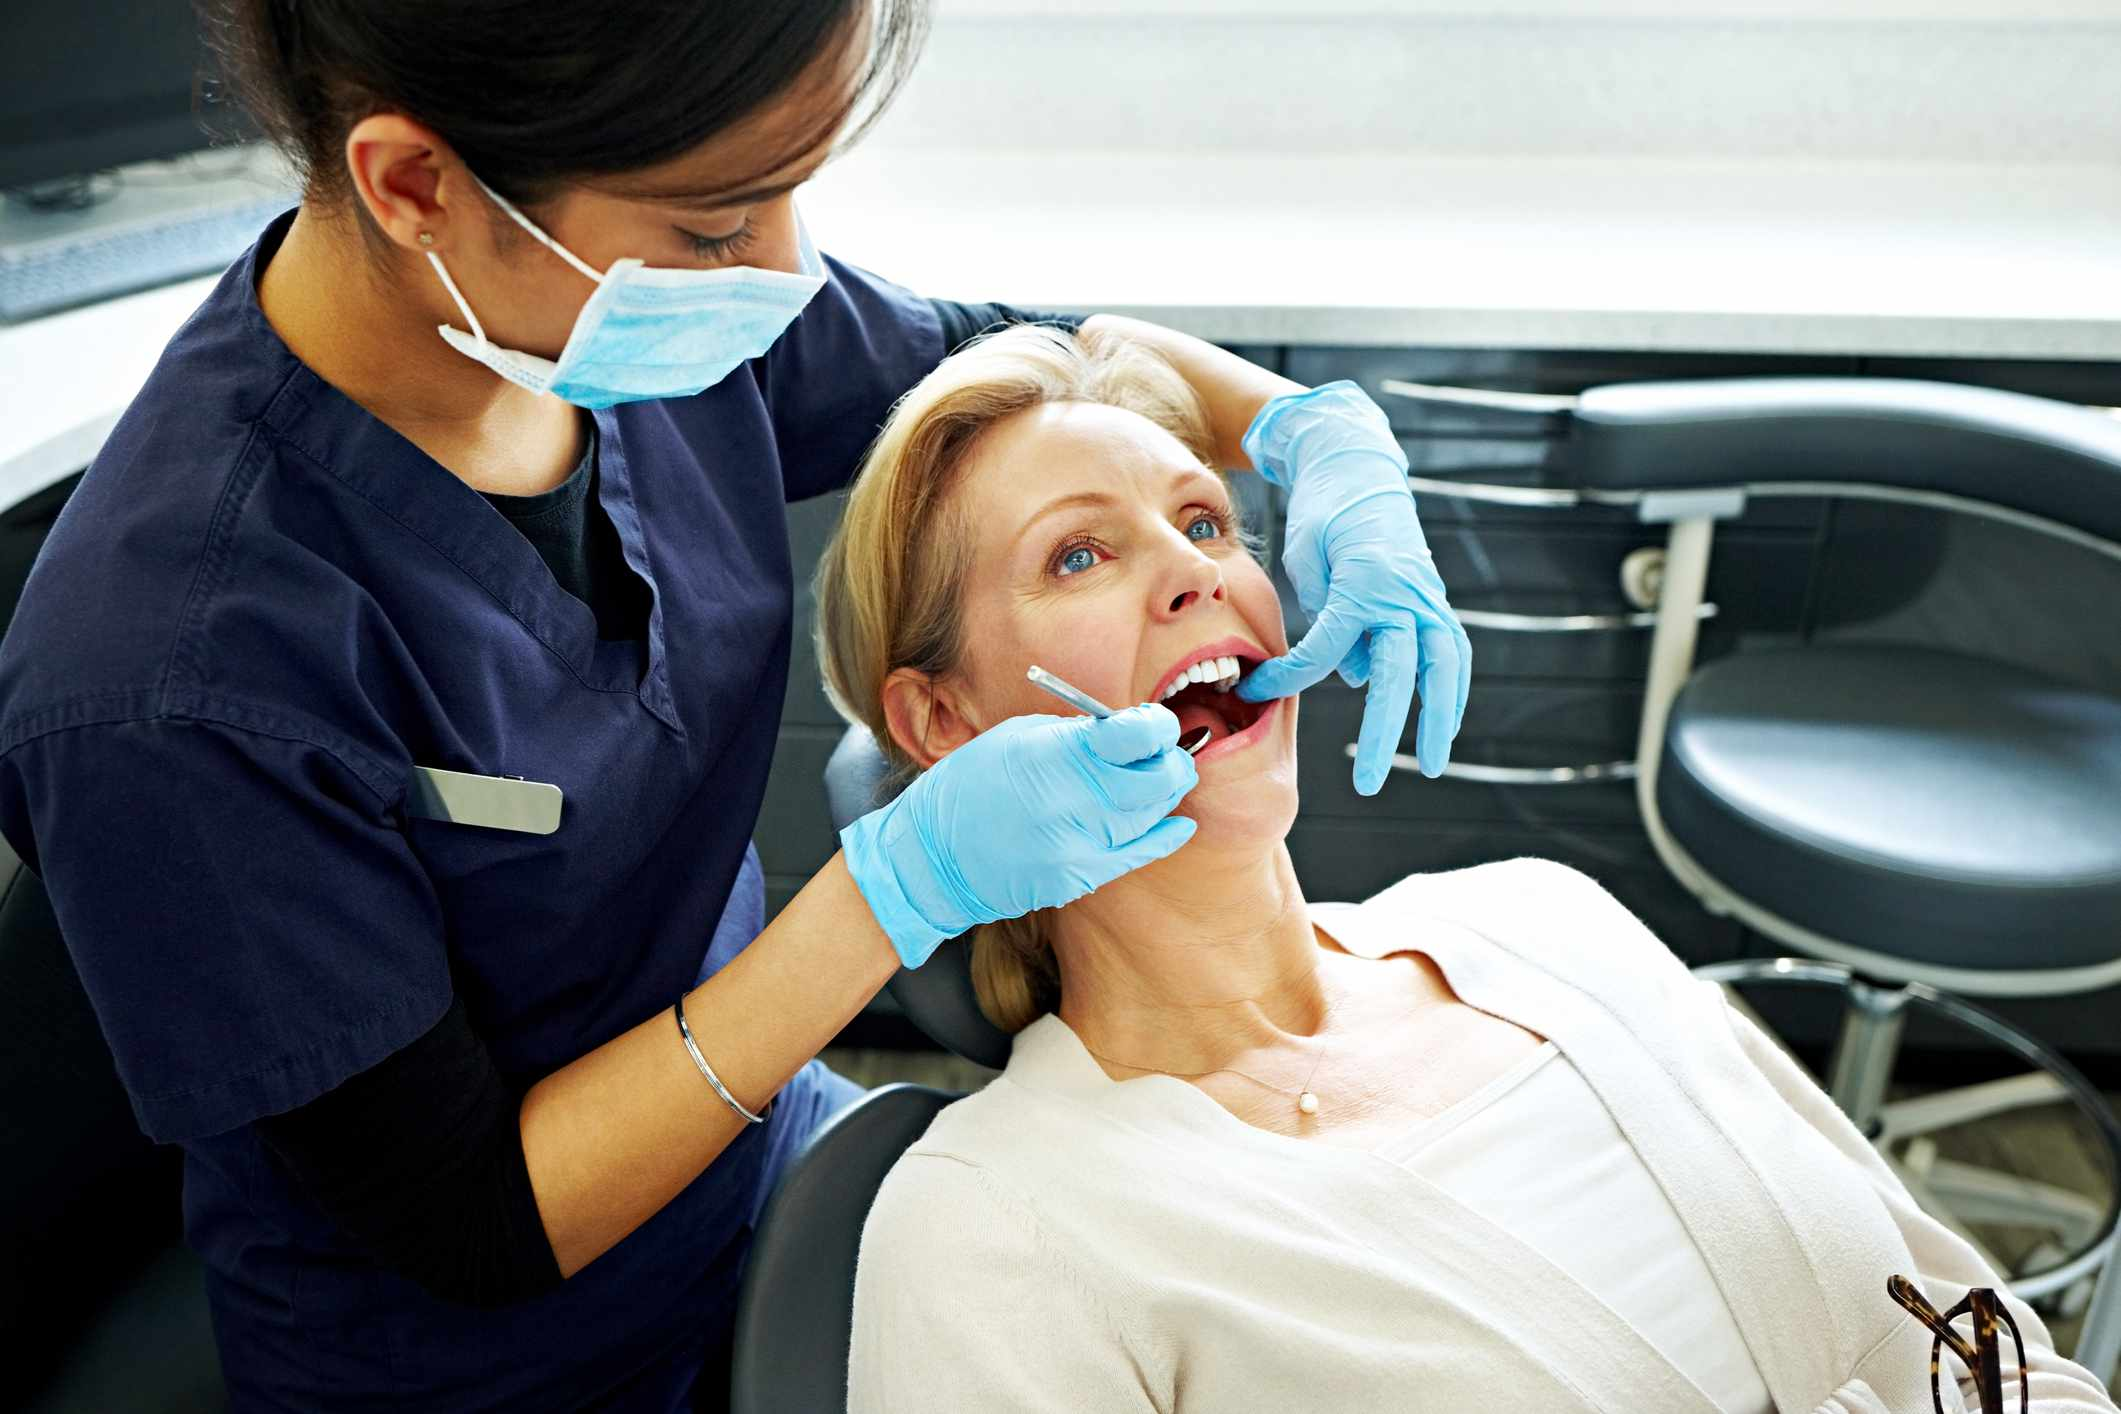 Woman having her teeth checked by dentist Portrait of mature woman having her teeth checked by dentist at dental clinic